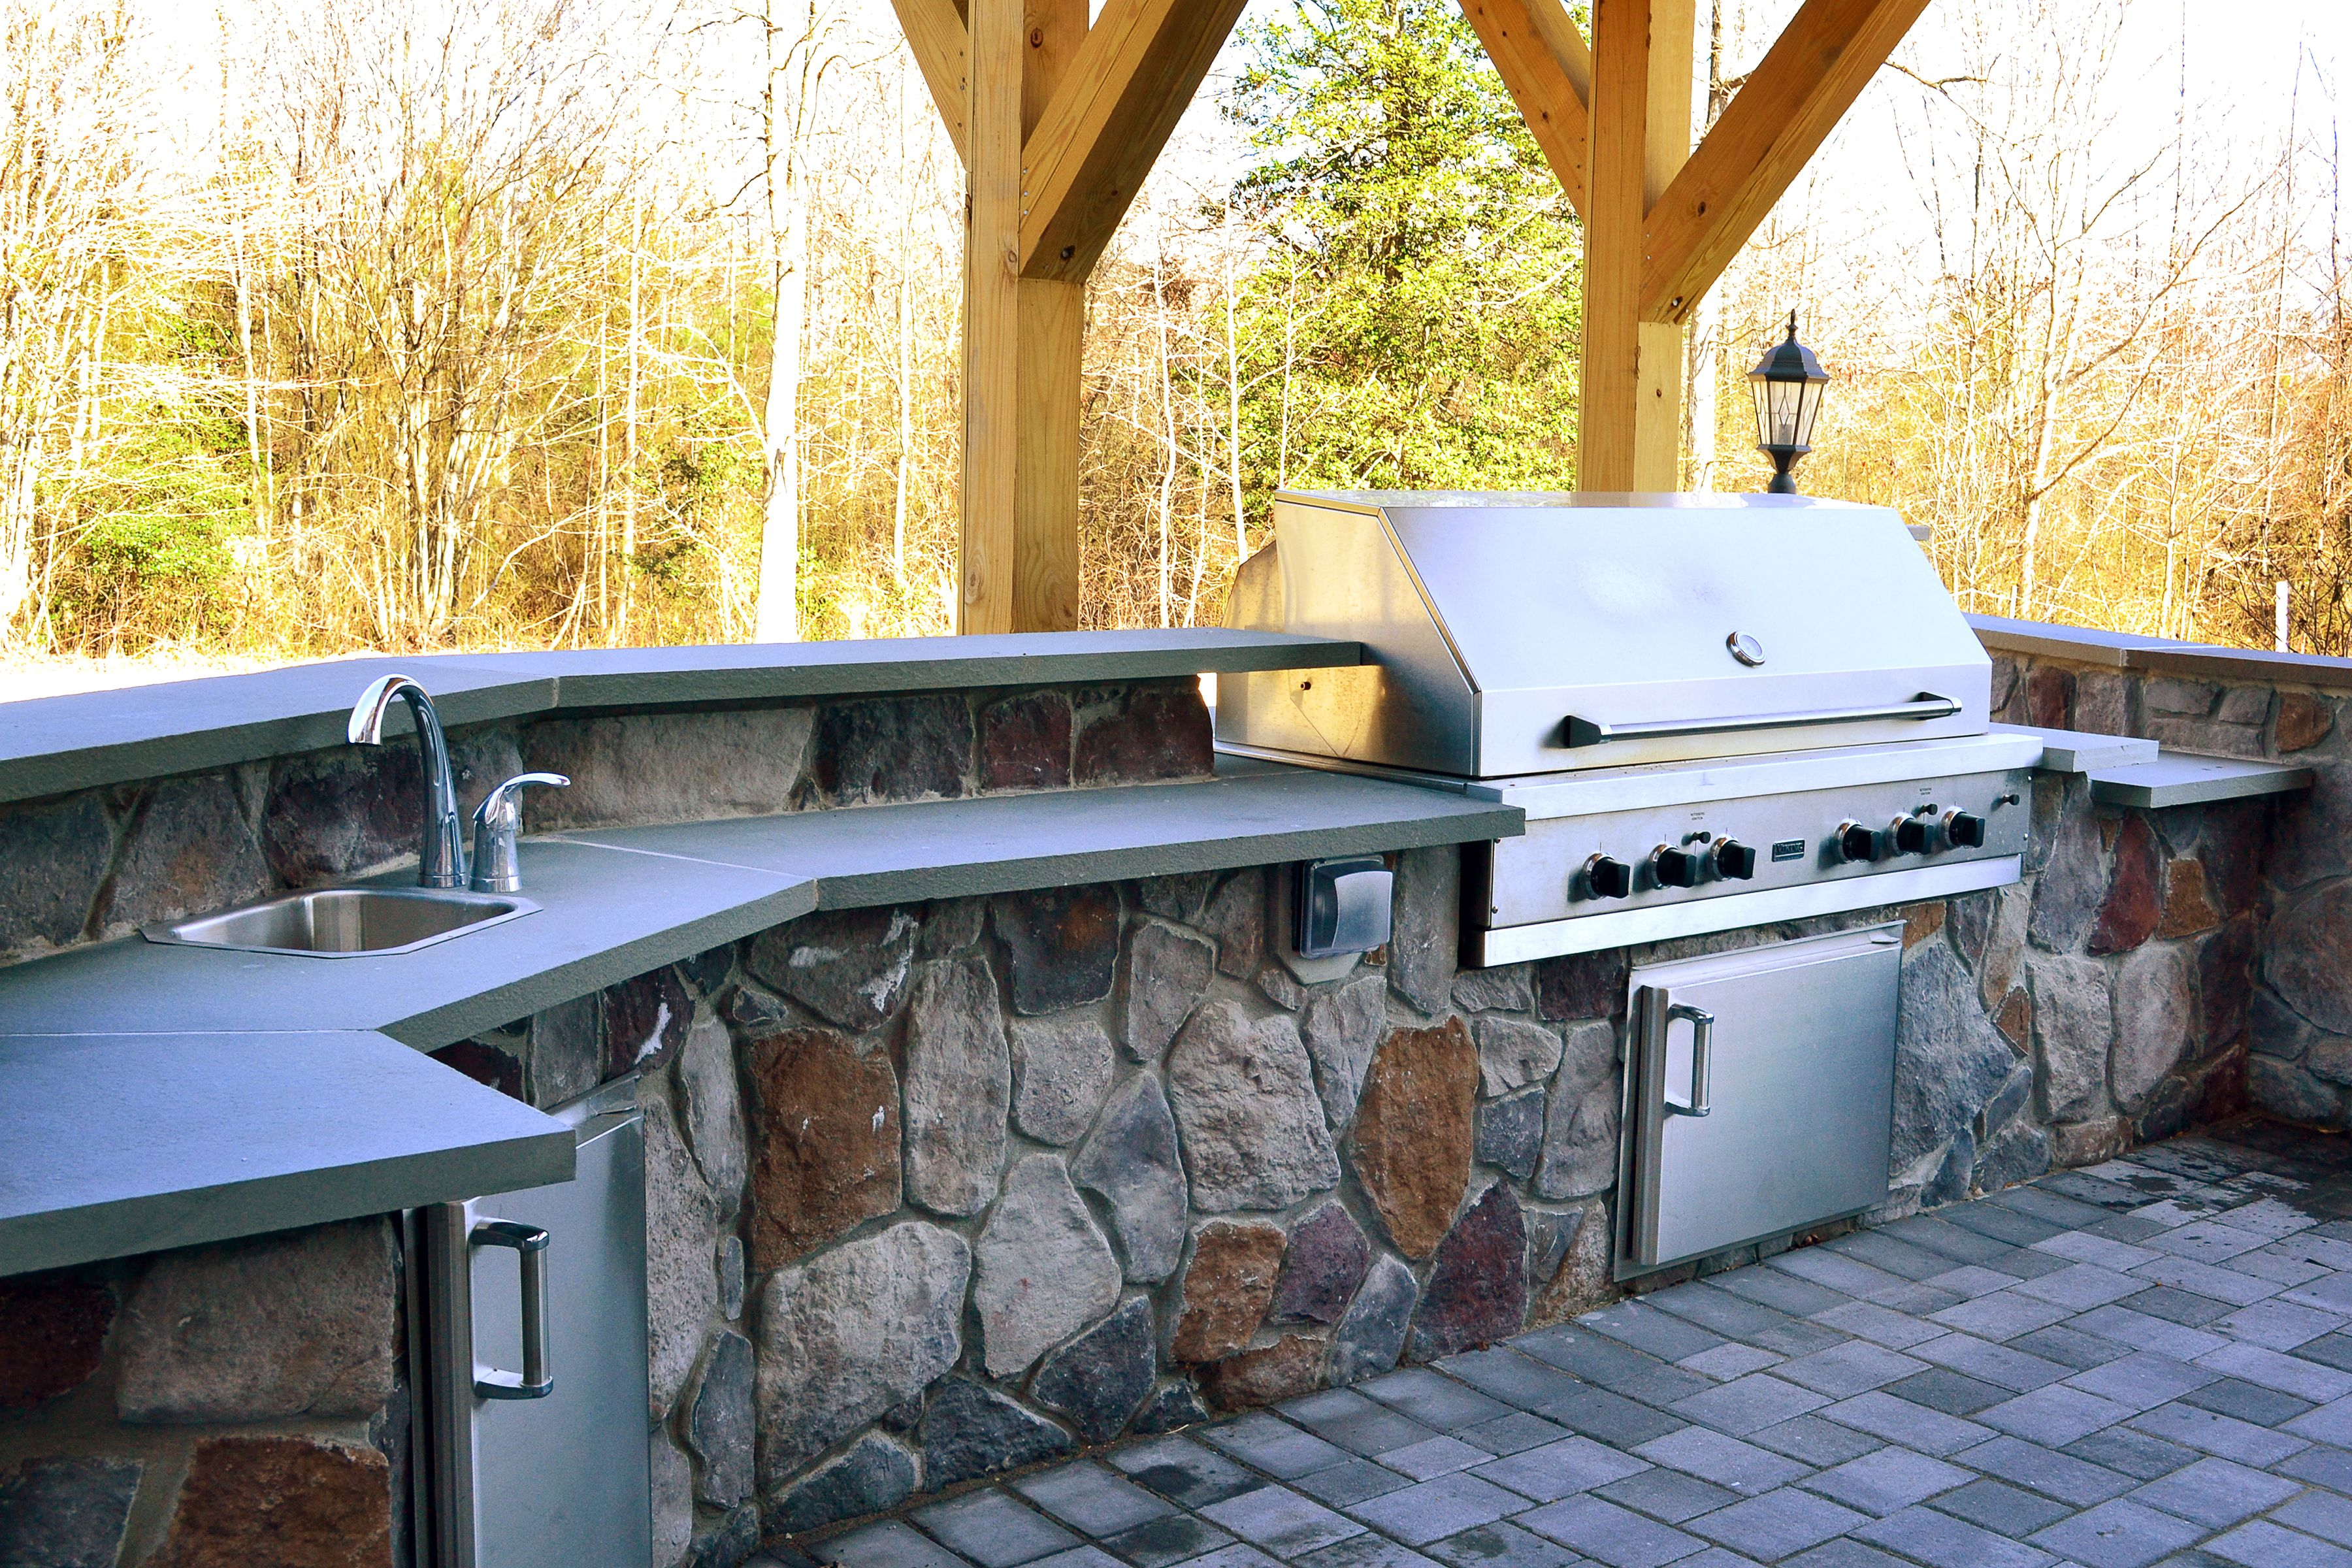 Stone Outdoor Kitchen With A Large Stainless Steel Grill Small Fridge And Sink C Balducci Outdoor Kitchen Countertops Outdoor Kitchen Outdoor Kitchen Design